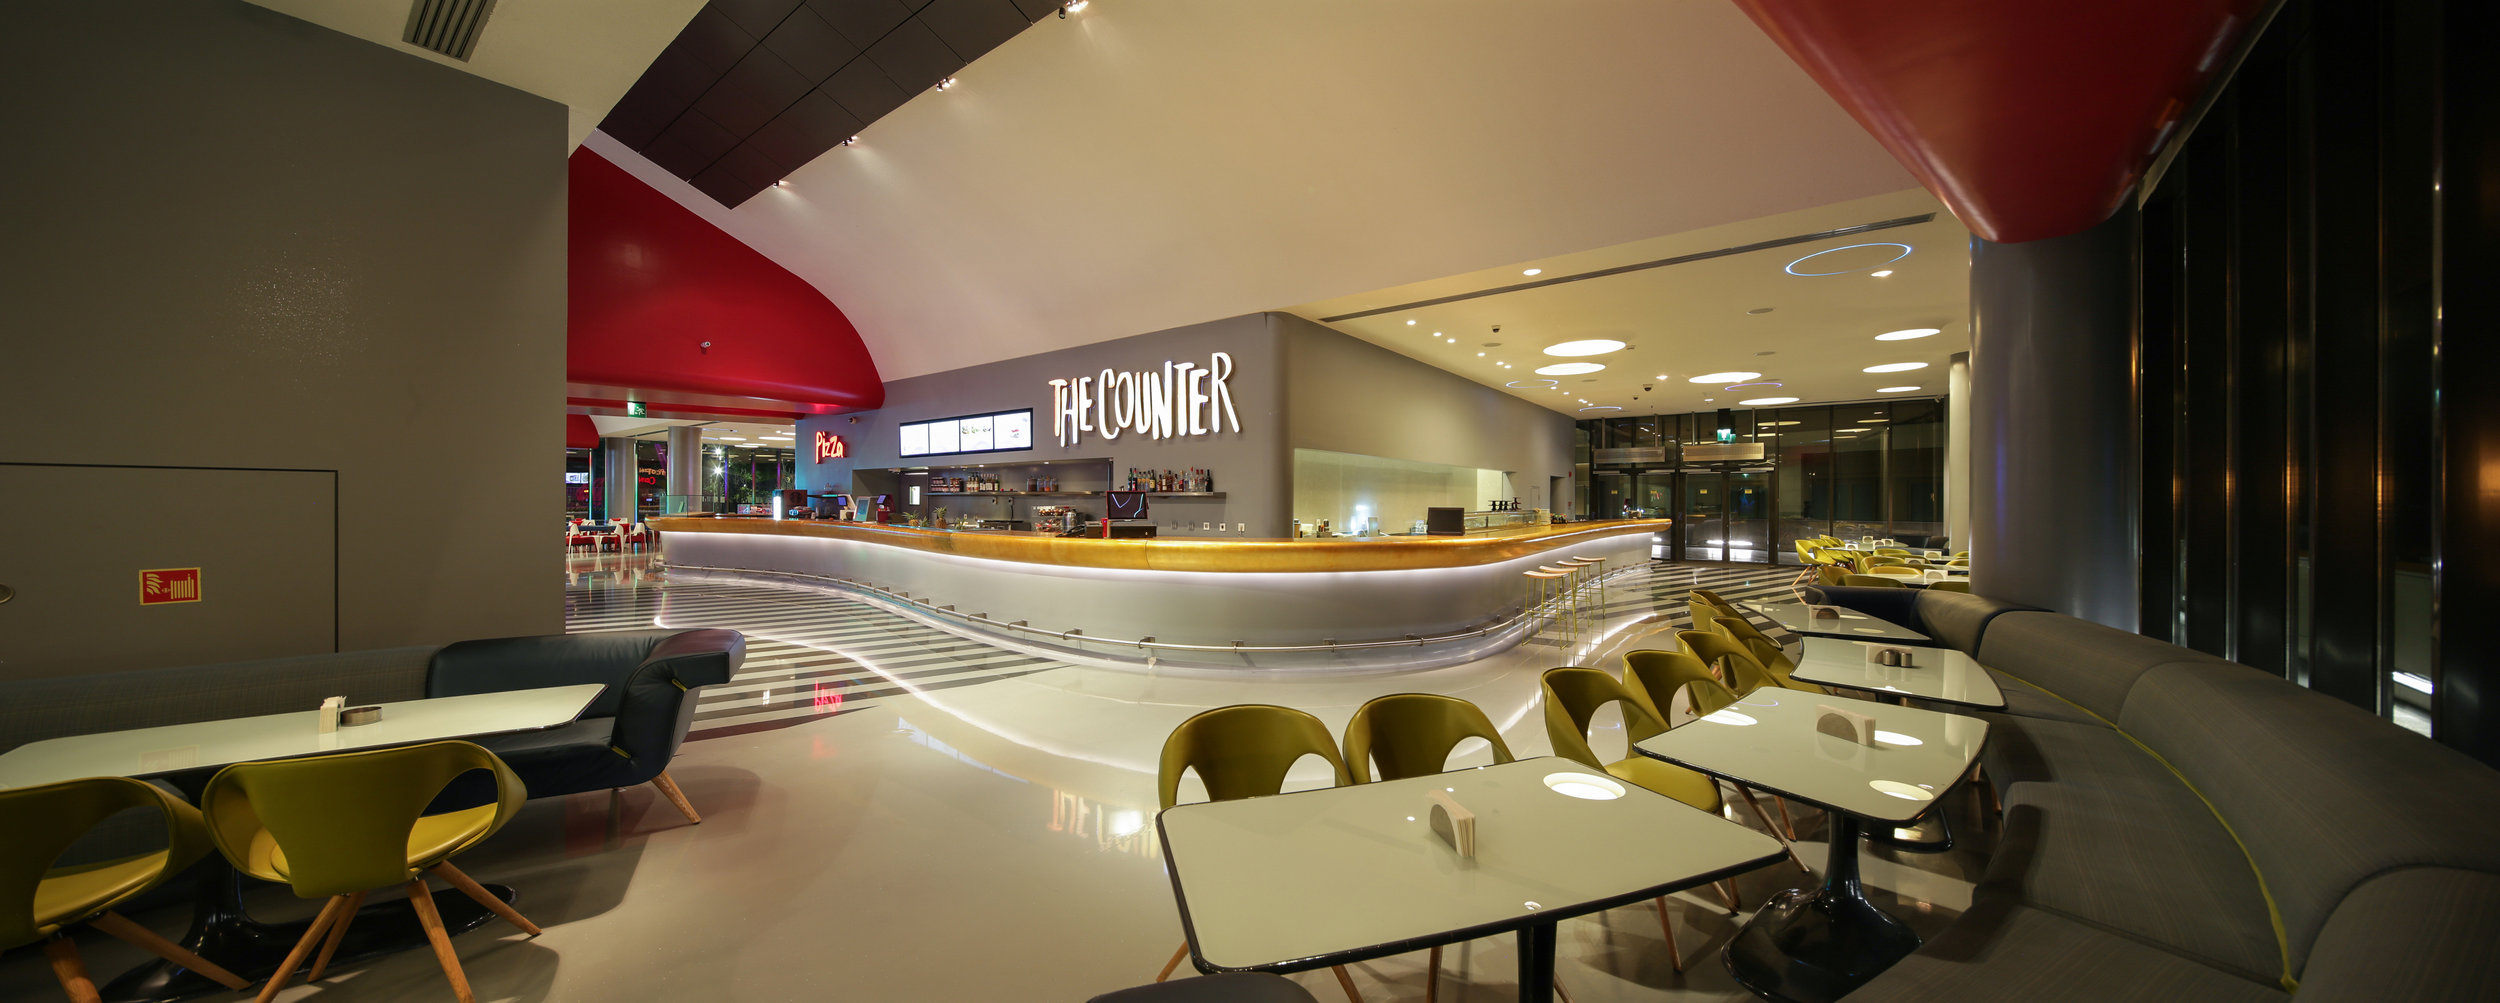 The Counter, Beirut Souks Cinemacity